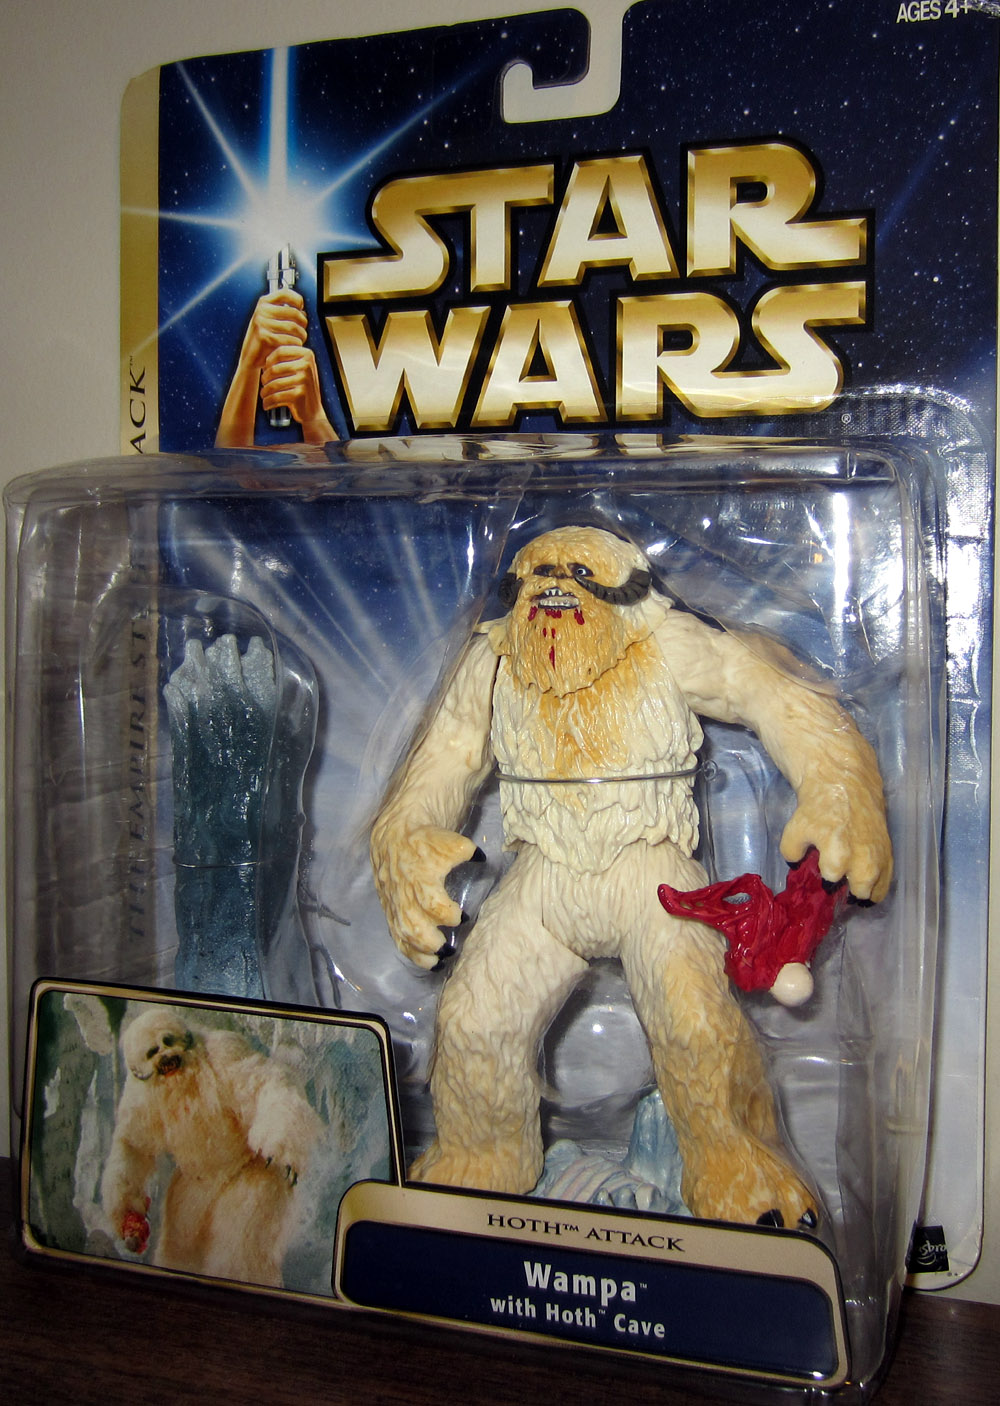 Wampa (with Hoth Cave)